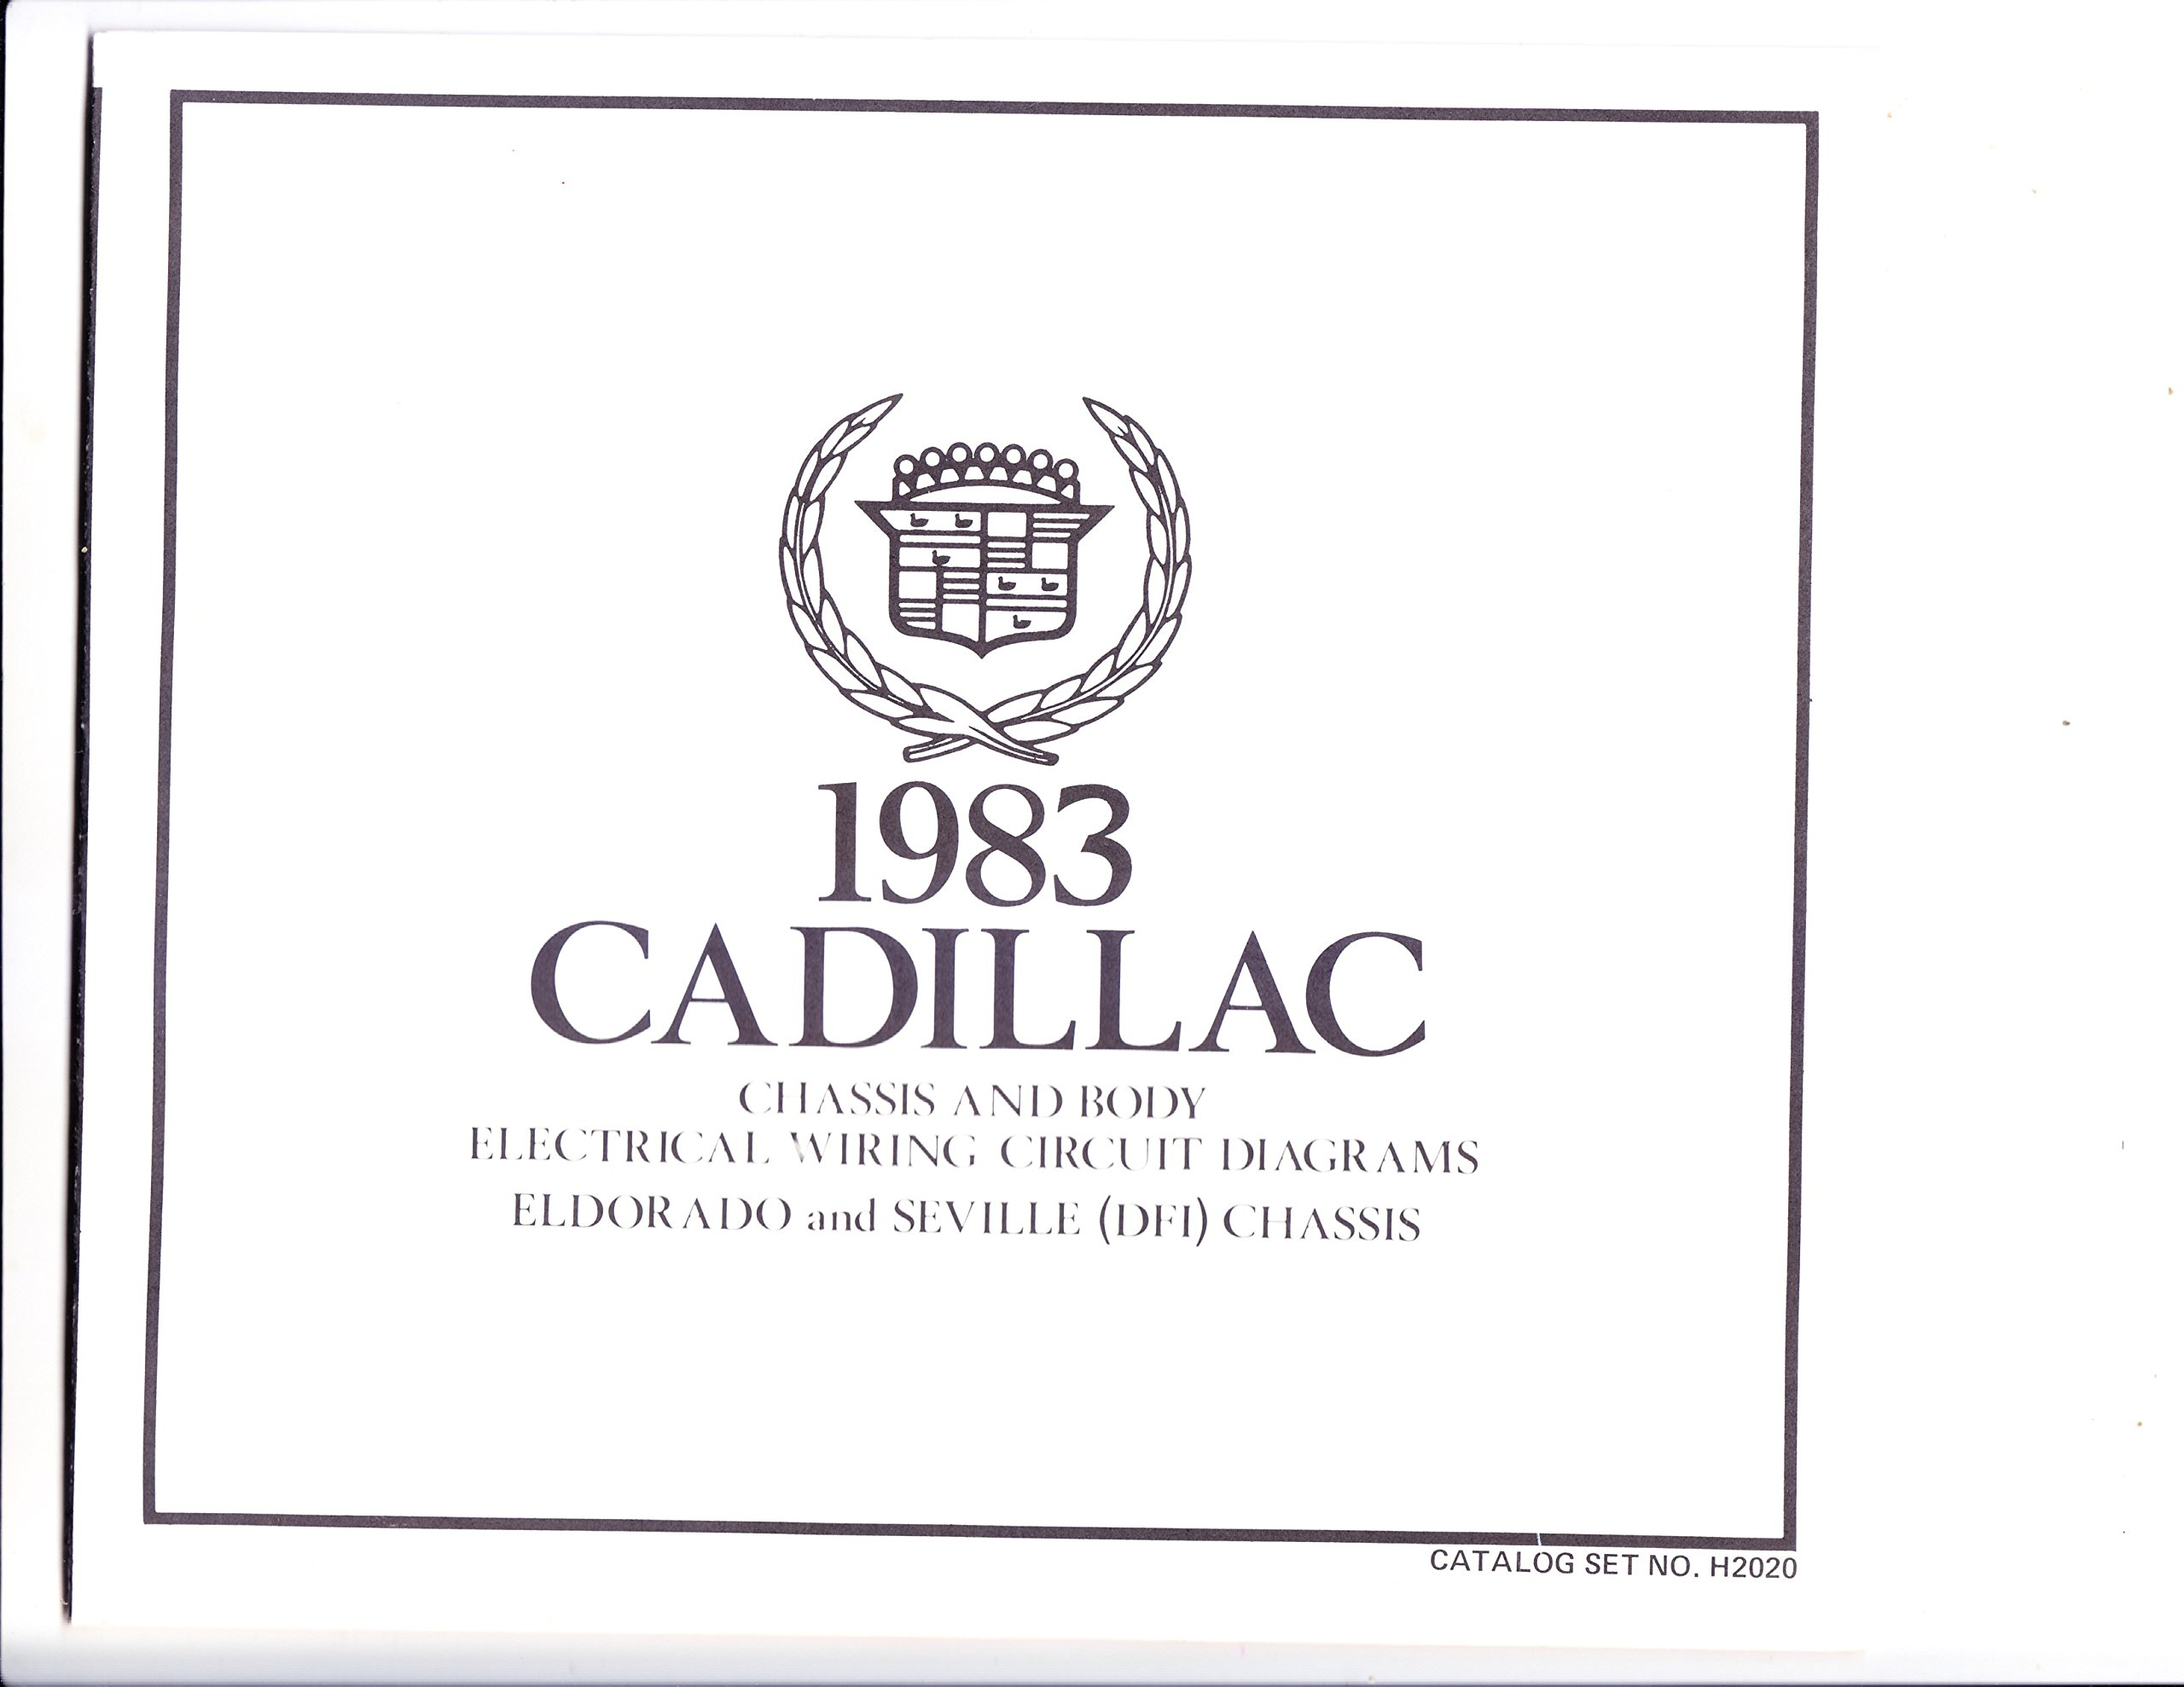 1983 Cadillac Chassis and Body Electrical Wiring Circuit Diagrams Eldorado  and Seville ( Dfi) Chassis: Amazon.com: Books